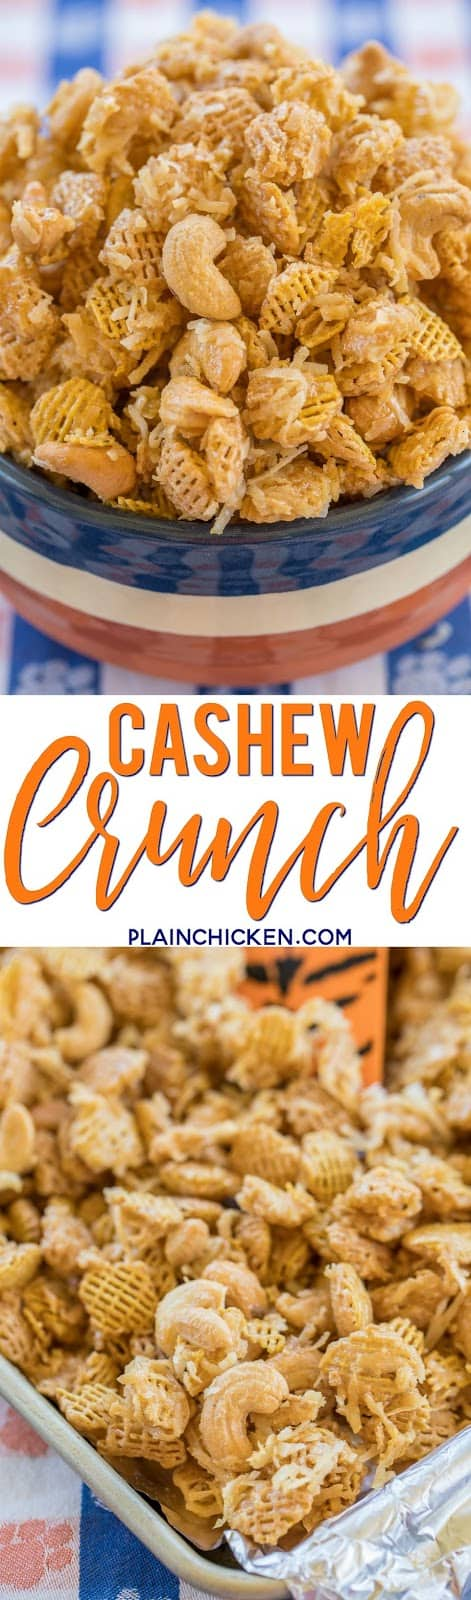 Cashew Crunch recipe - CRAZY good snack mix! Cashews, Coconut and Crispix tossed in a sweet brown sugar syrup. Makes a ton. Great for easy homemade holiday gifts. #christmasrecipes #snackmix #cashews #homemadegift #chexmix